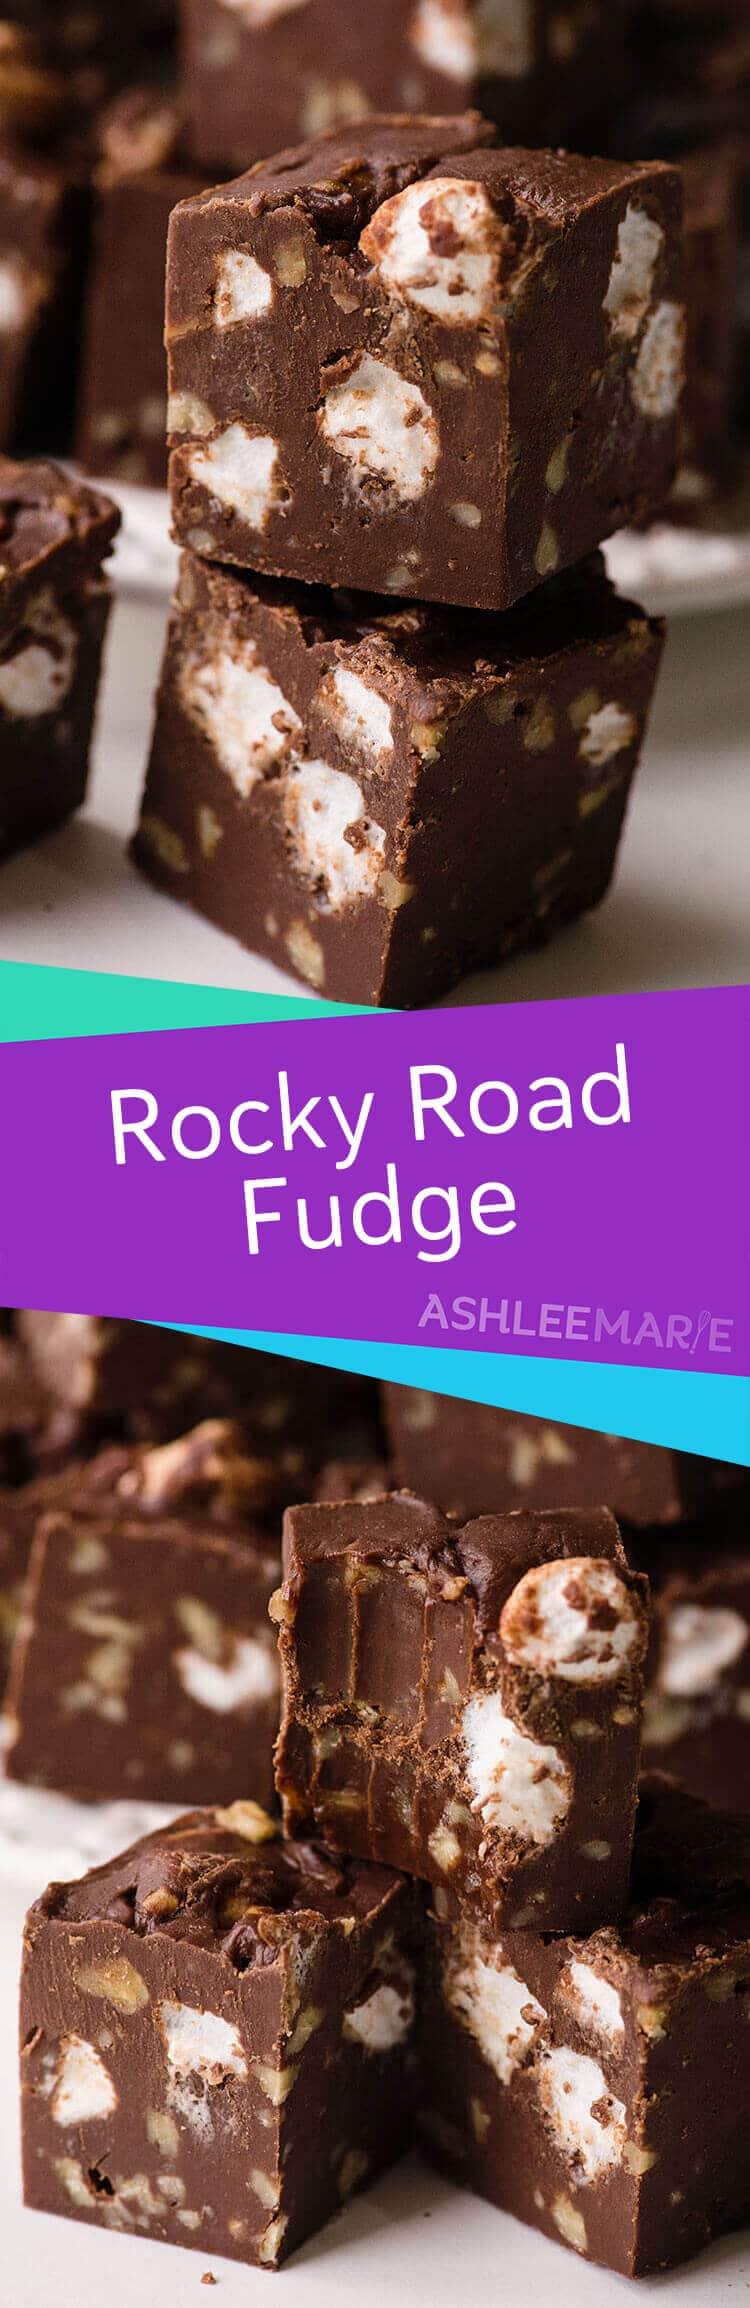 rocky road fudge recipe video tutorial